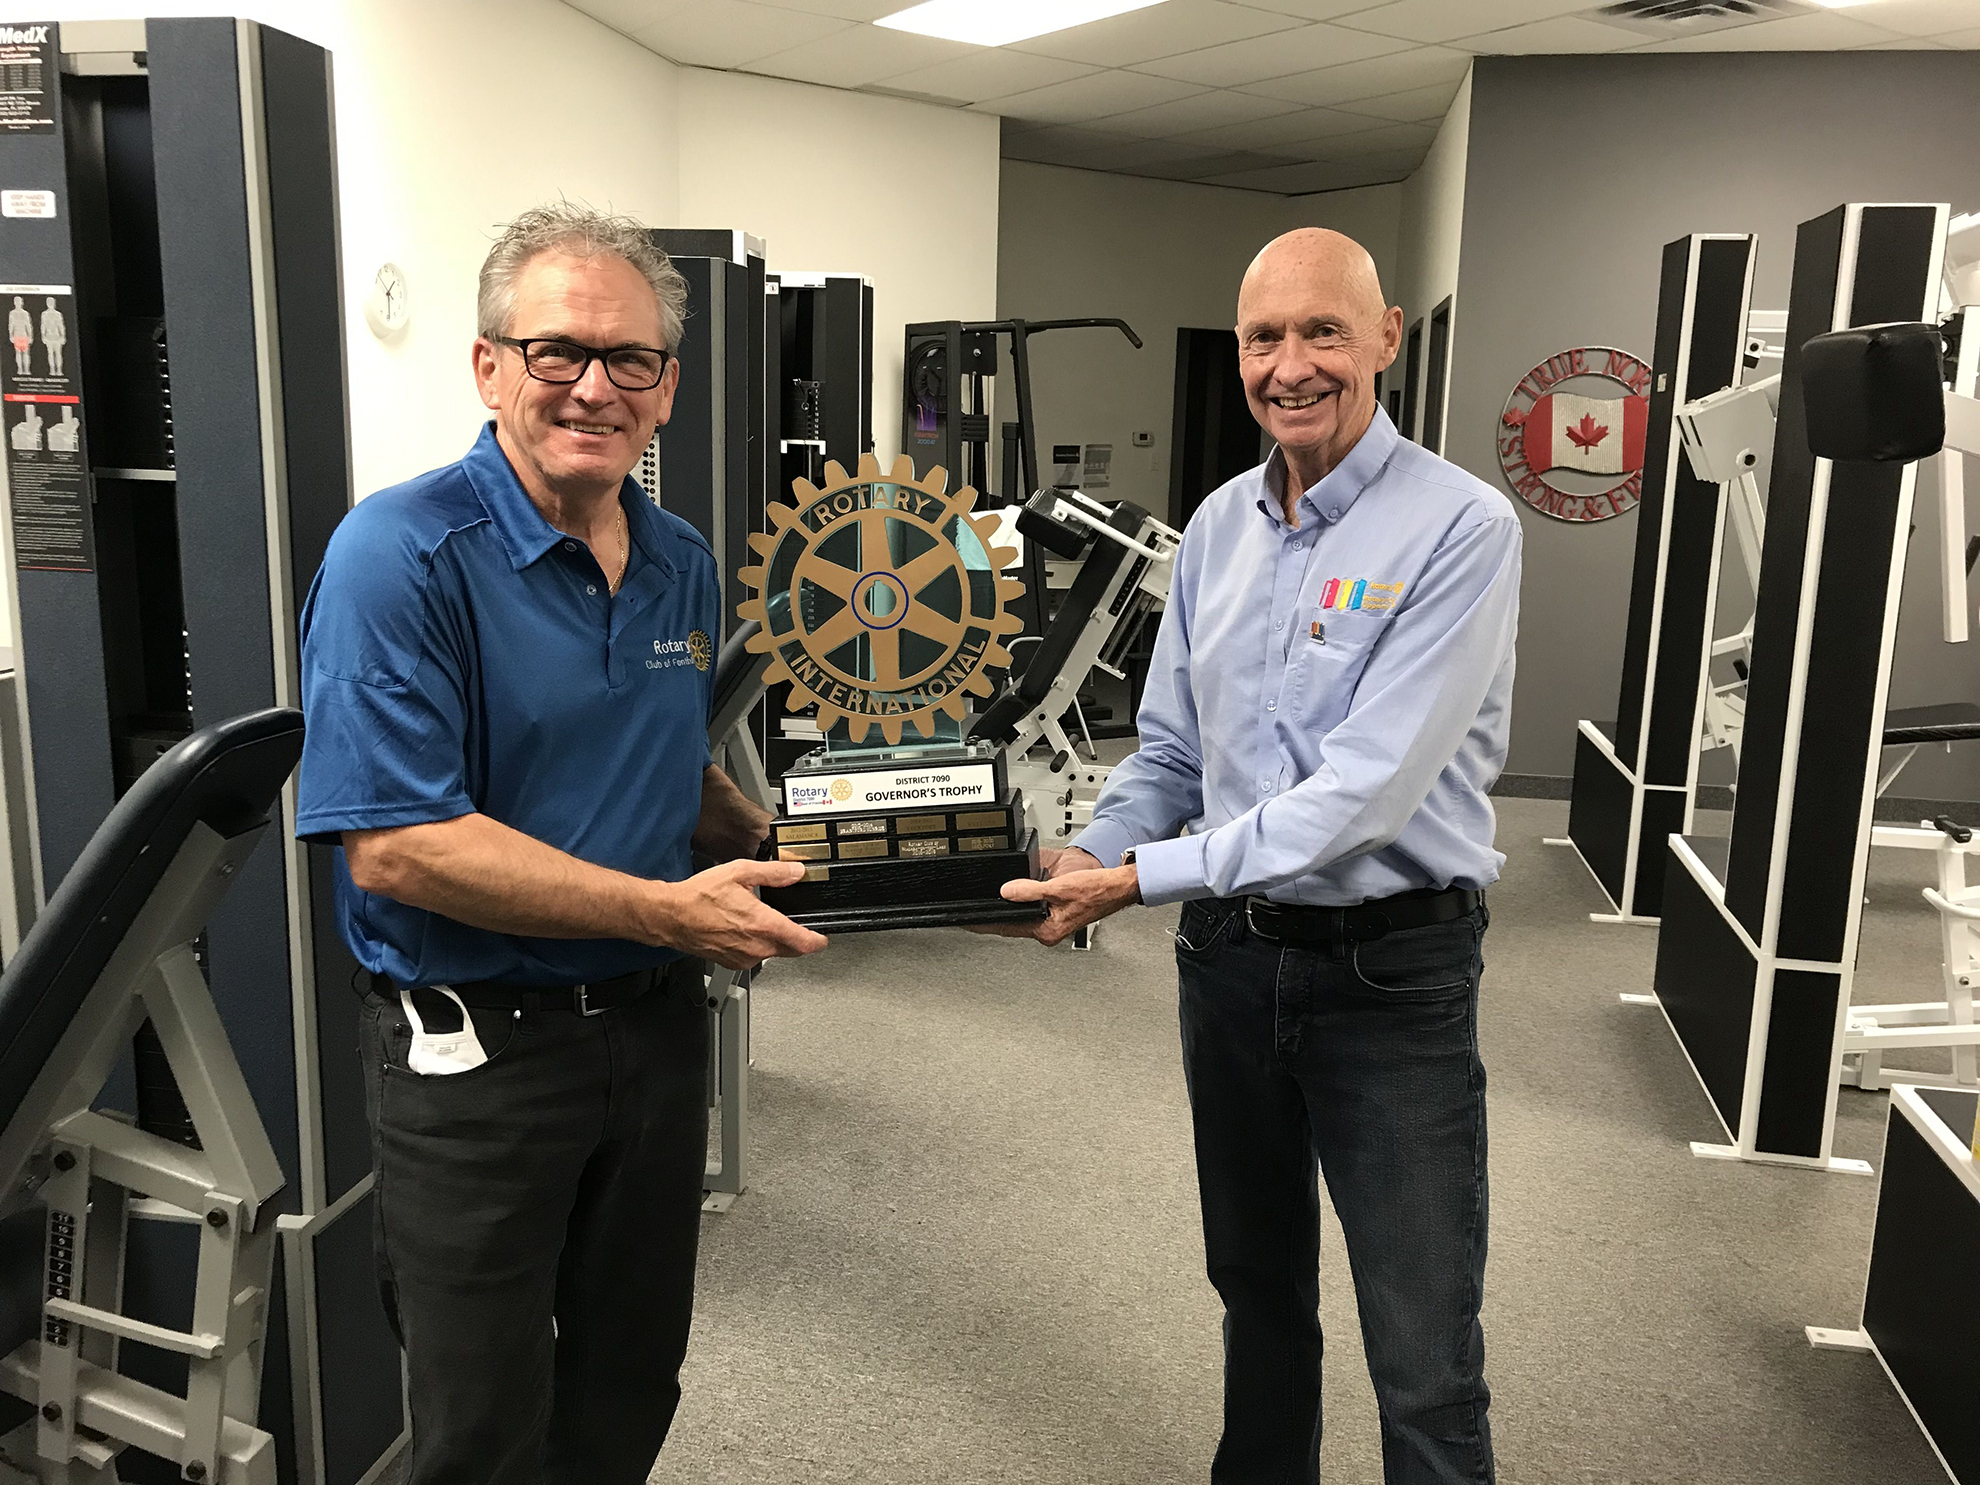 Rotary Club of Fonthill Receives Three Prestigious Awards for 2020-21